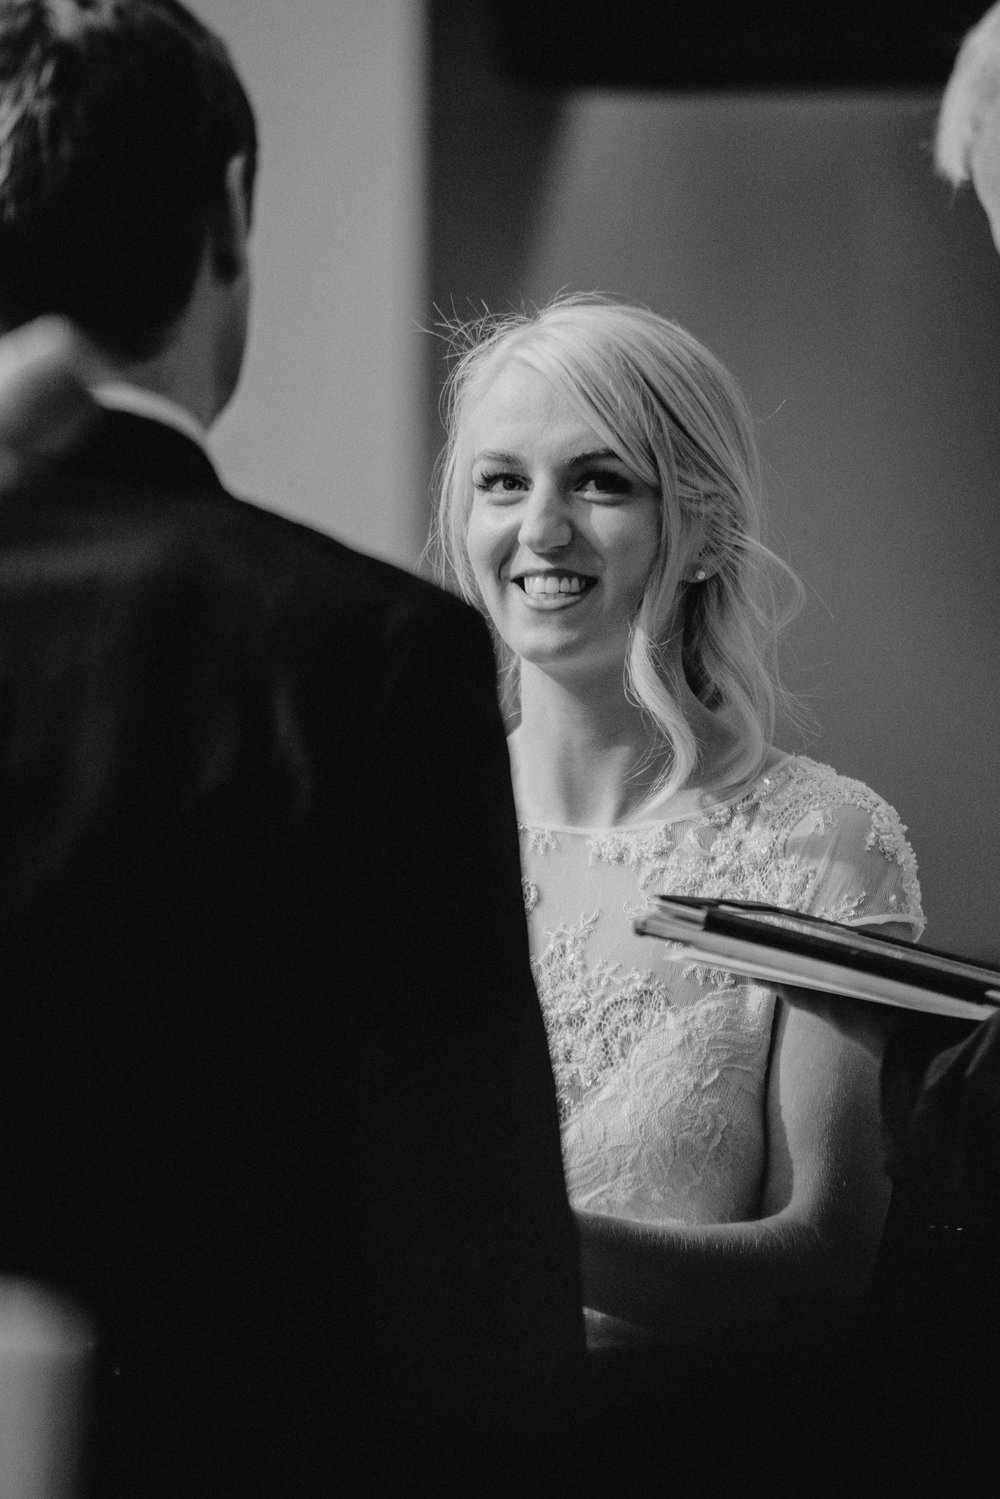 larchfield estate wedding photos-49.jpg